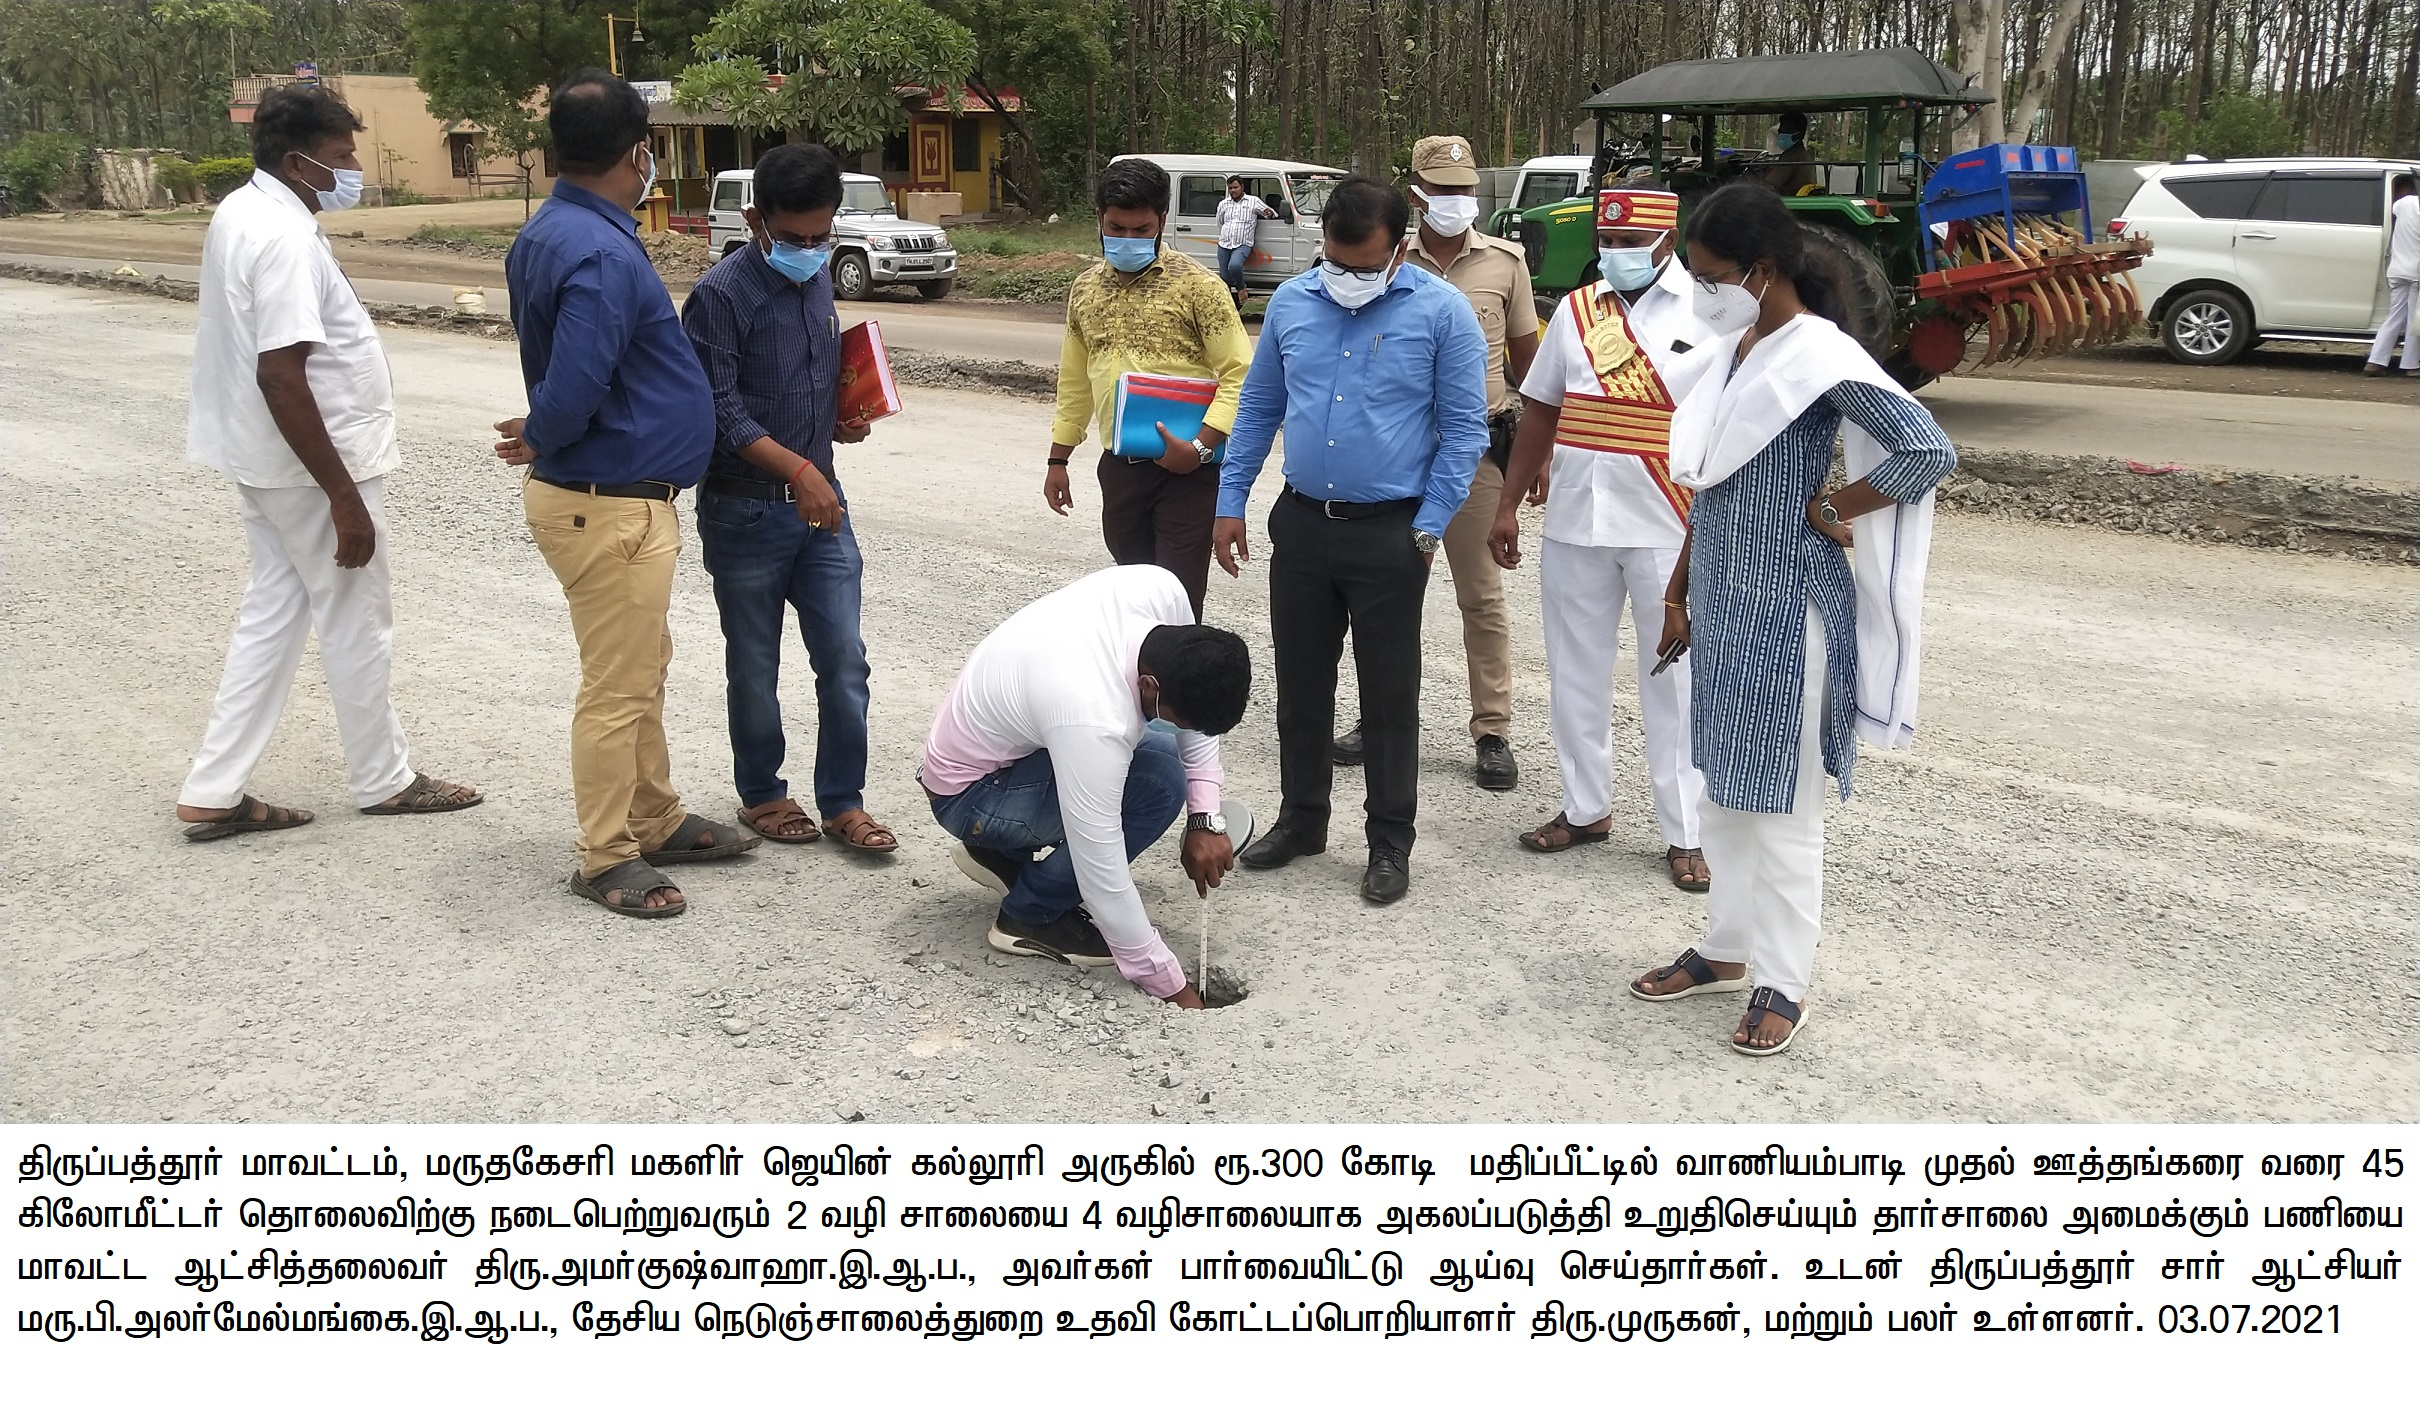 District Collector Inspection 03/07/2021